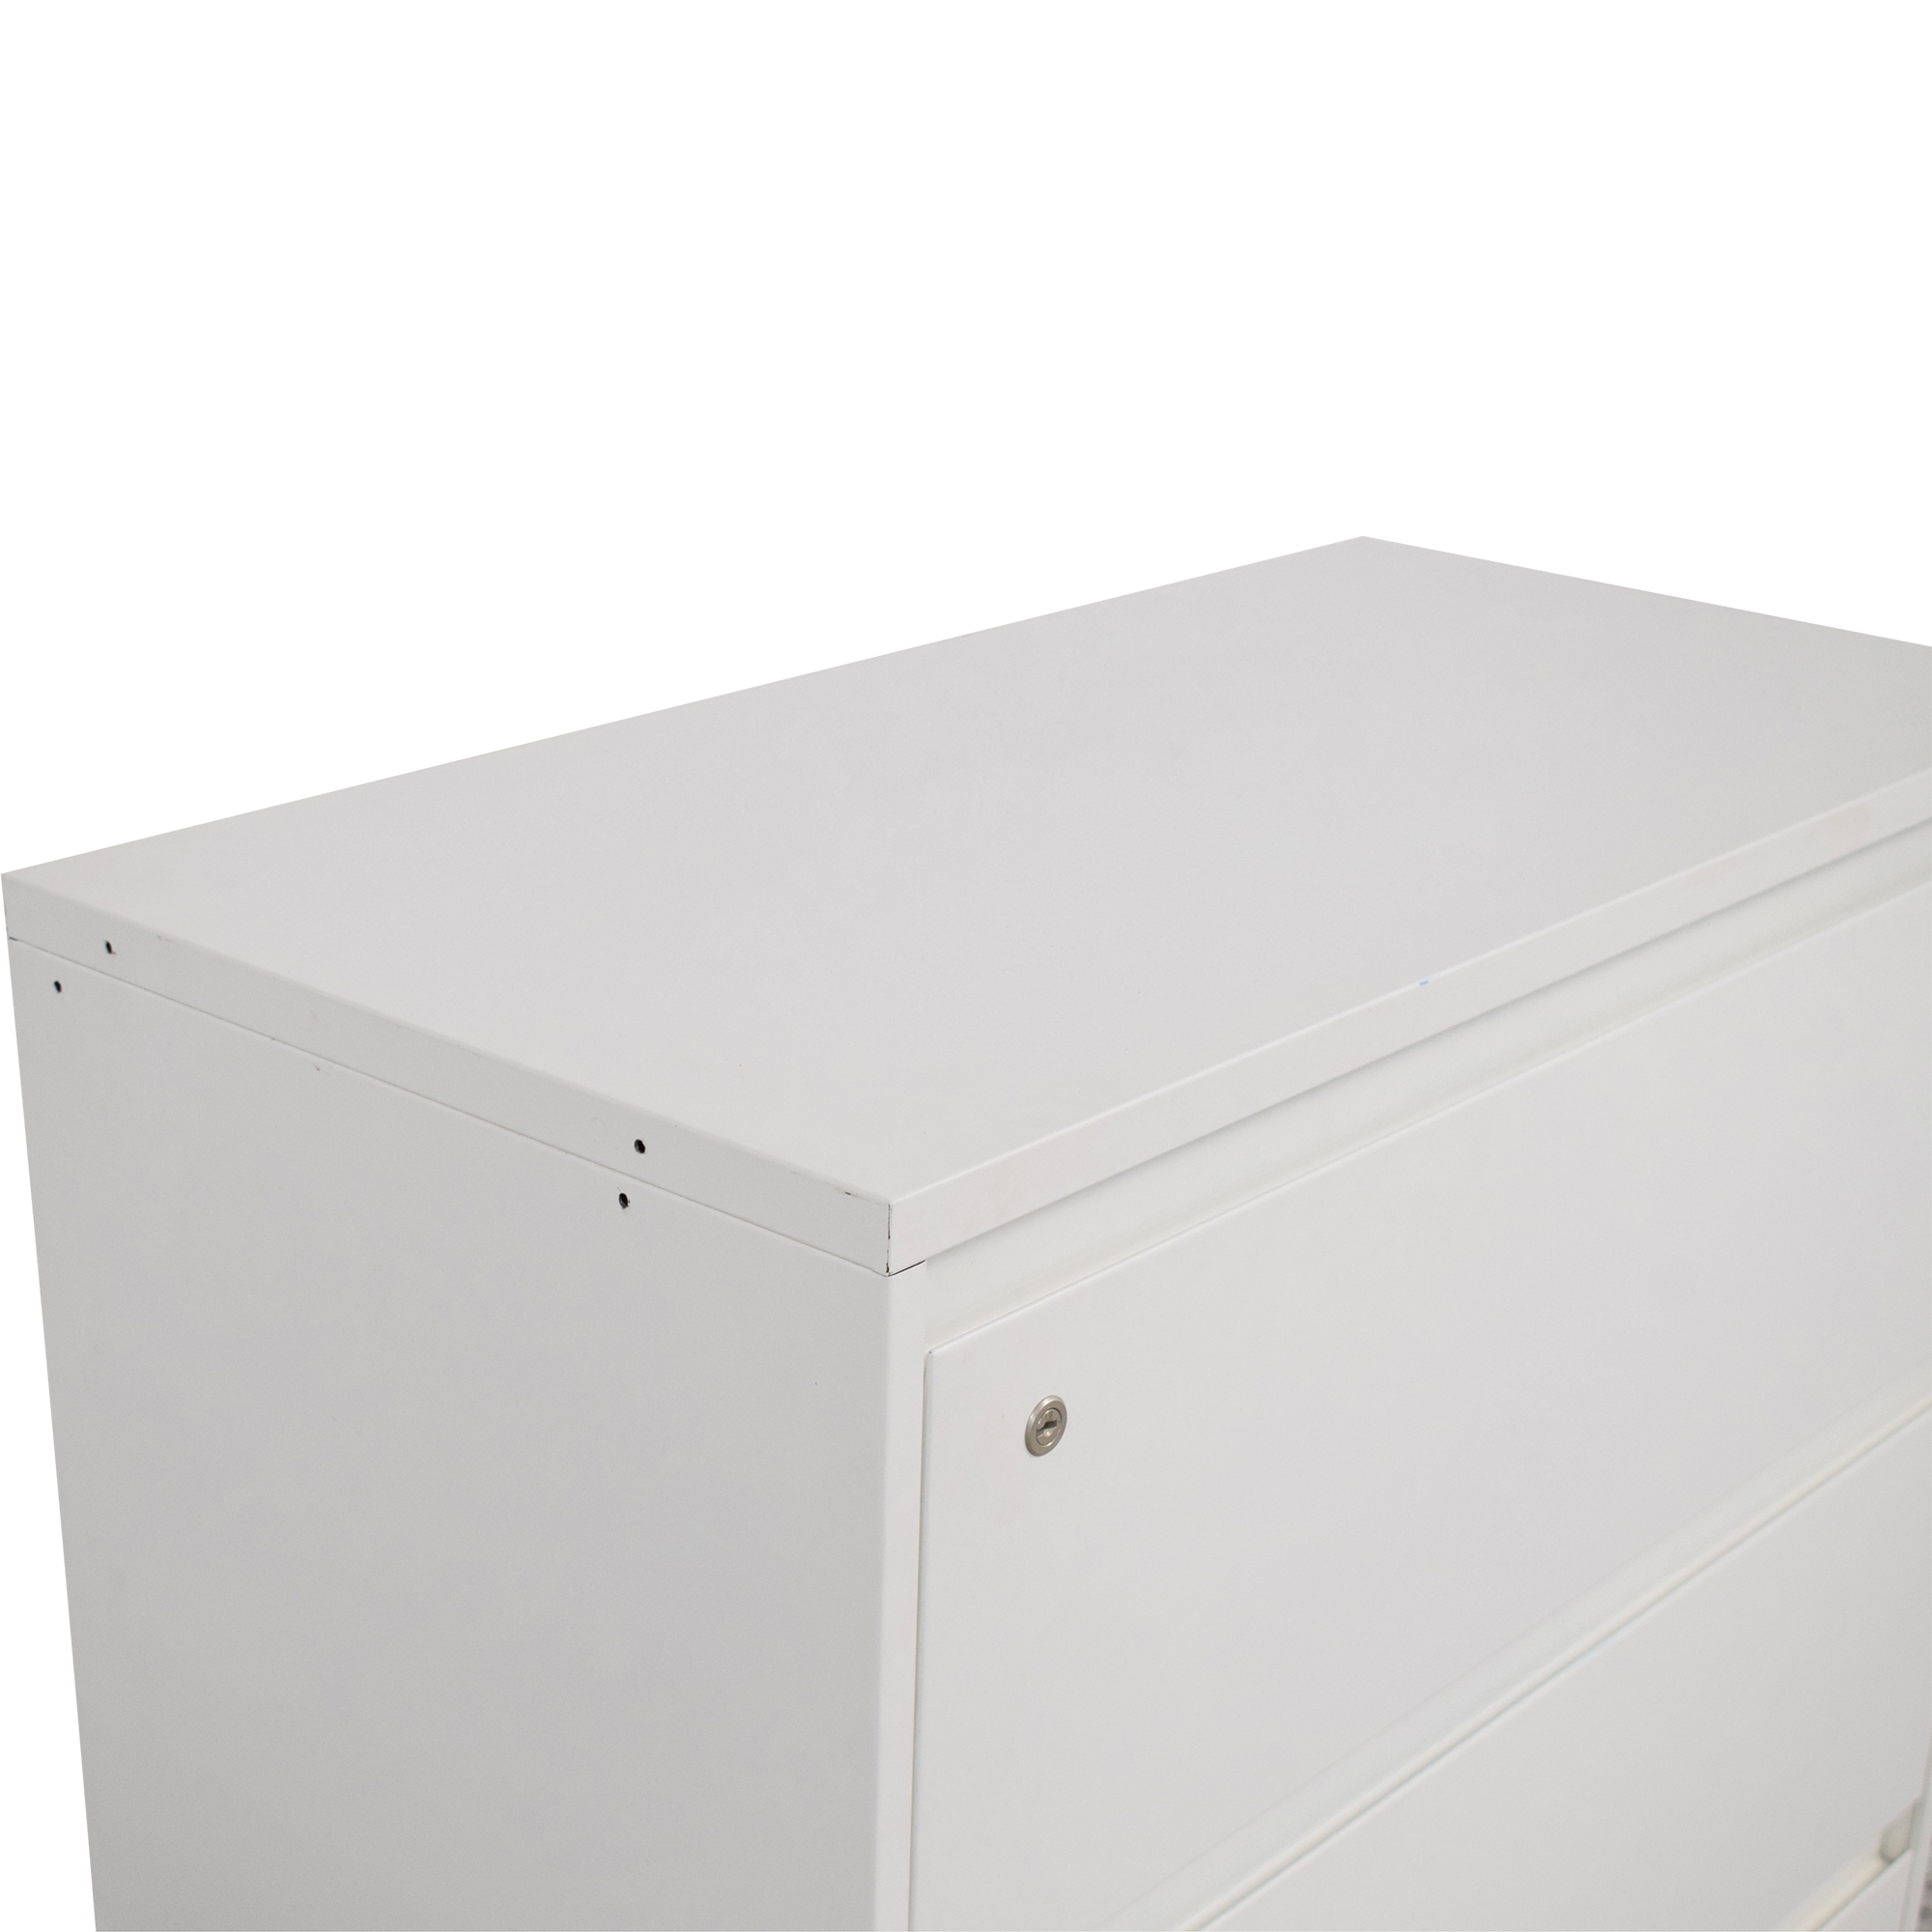 Steelcase Steelcase Three Drawer Lateral Filing Cabinet used